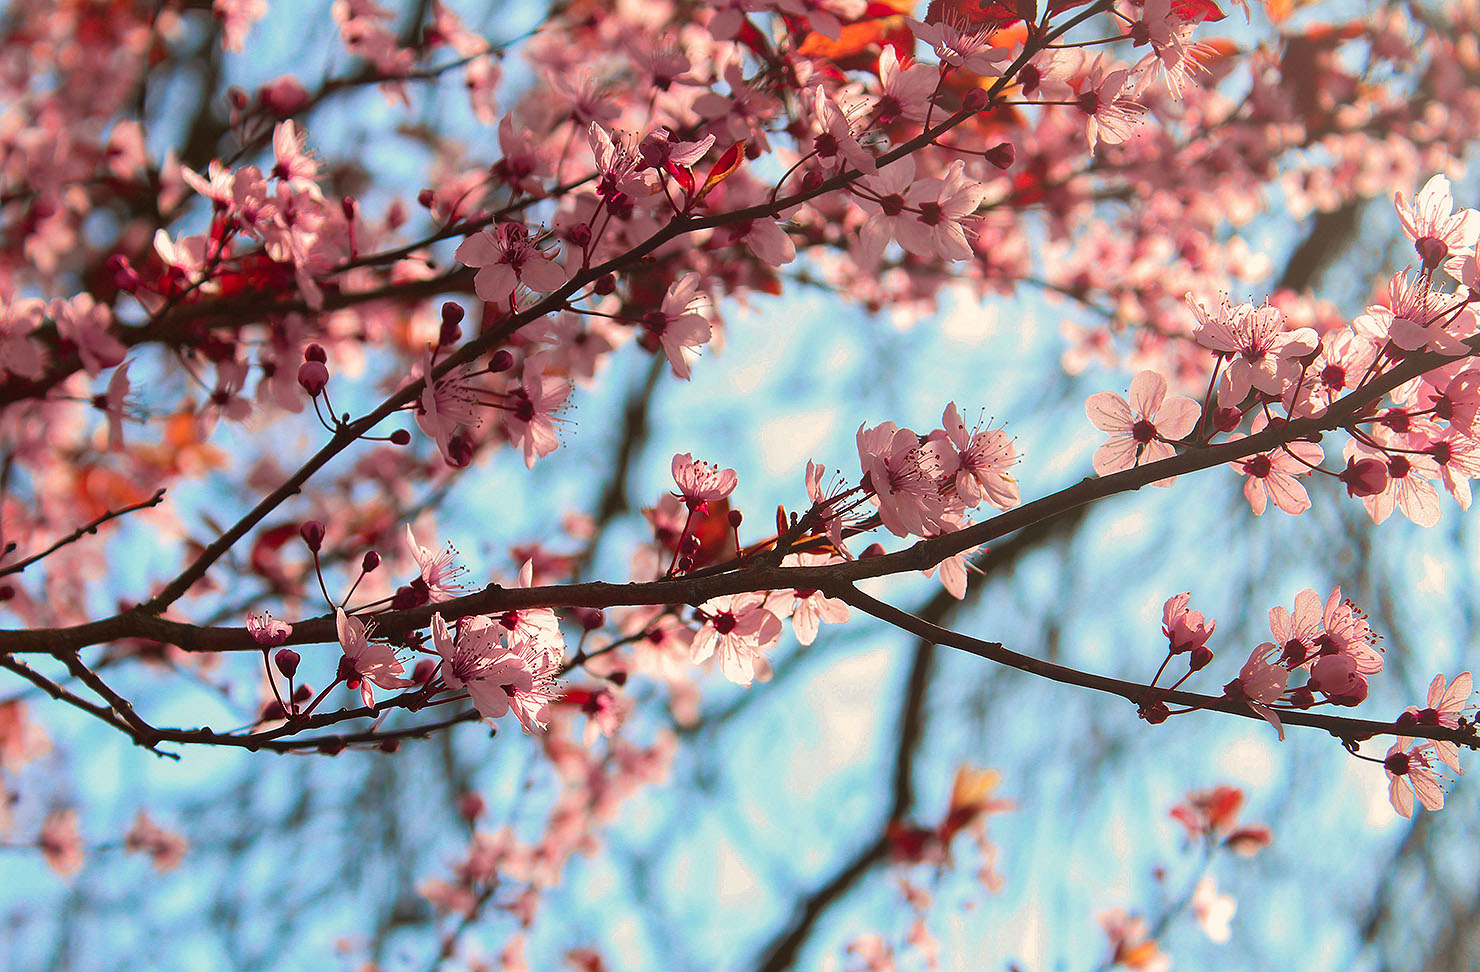 Beautiful close up shot of cherry blossom on the trees.